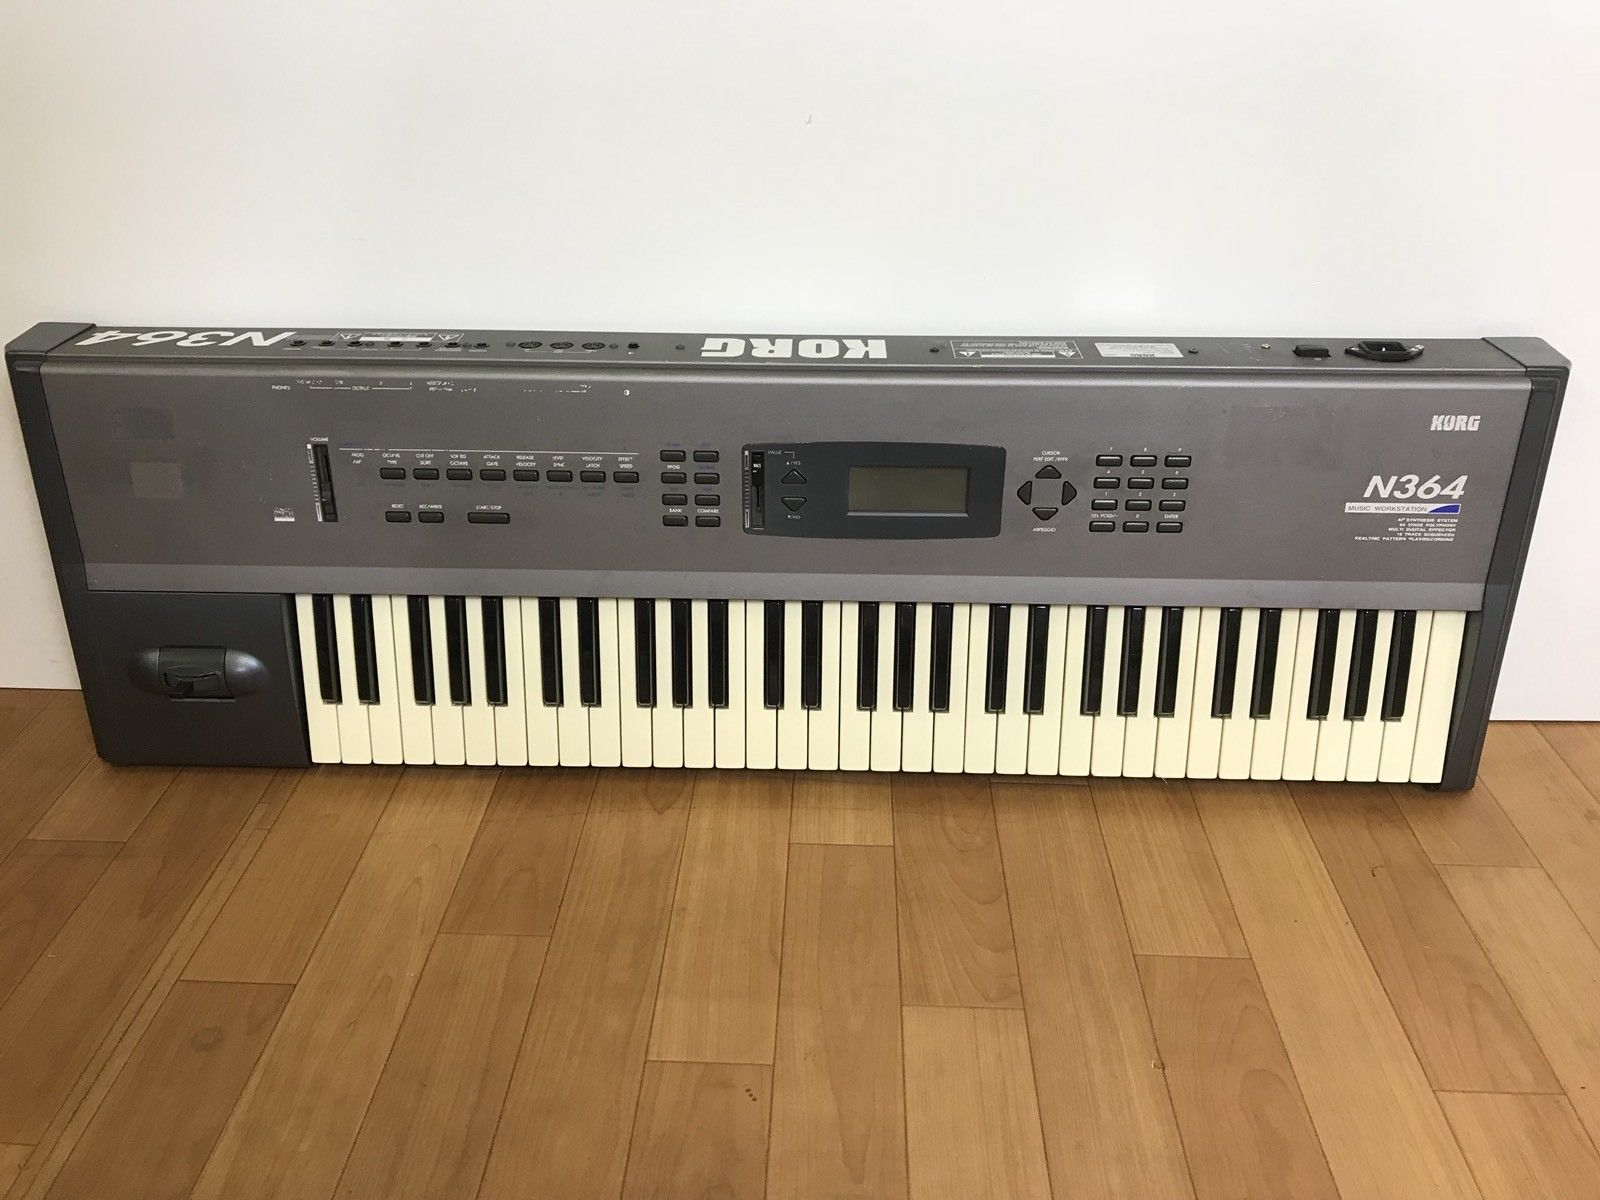 Korg-N364-Synthesizer-Workstation-in-Good-Condition